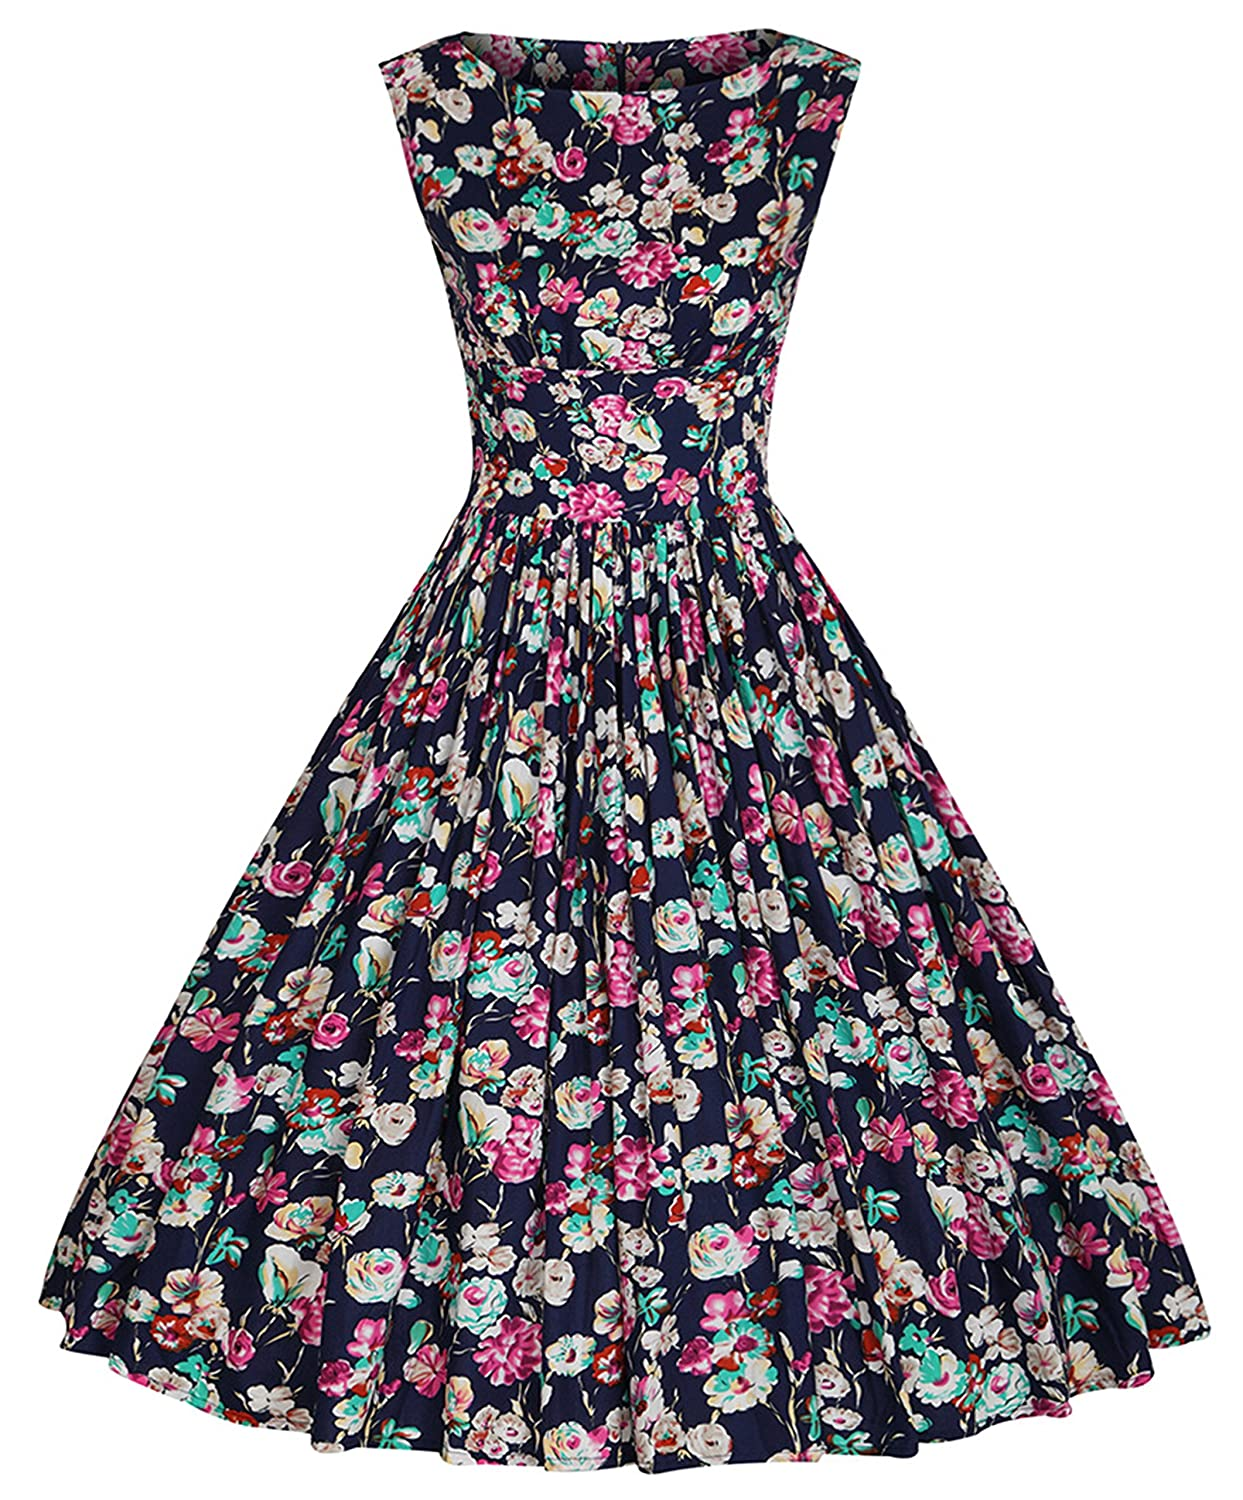 VEZEL Women's Retro Vintage Floral Spring Party Picnic Swing Sleeveless Dress